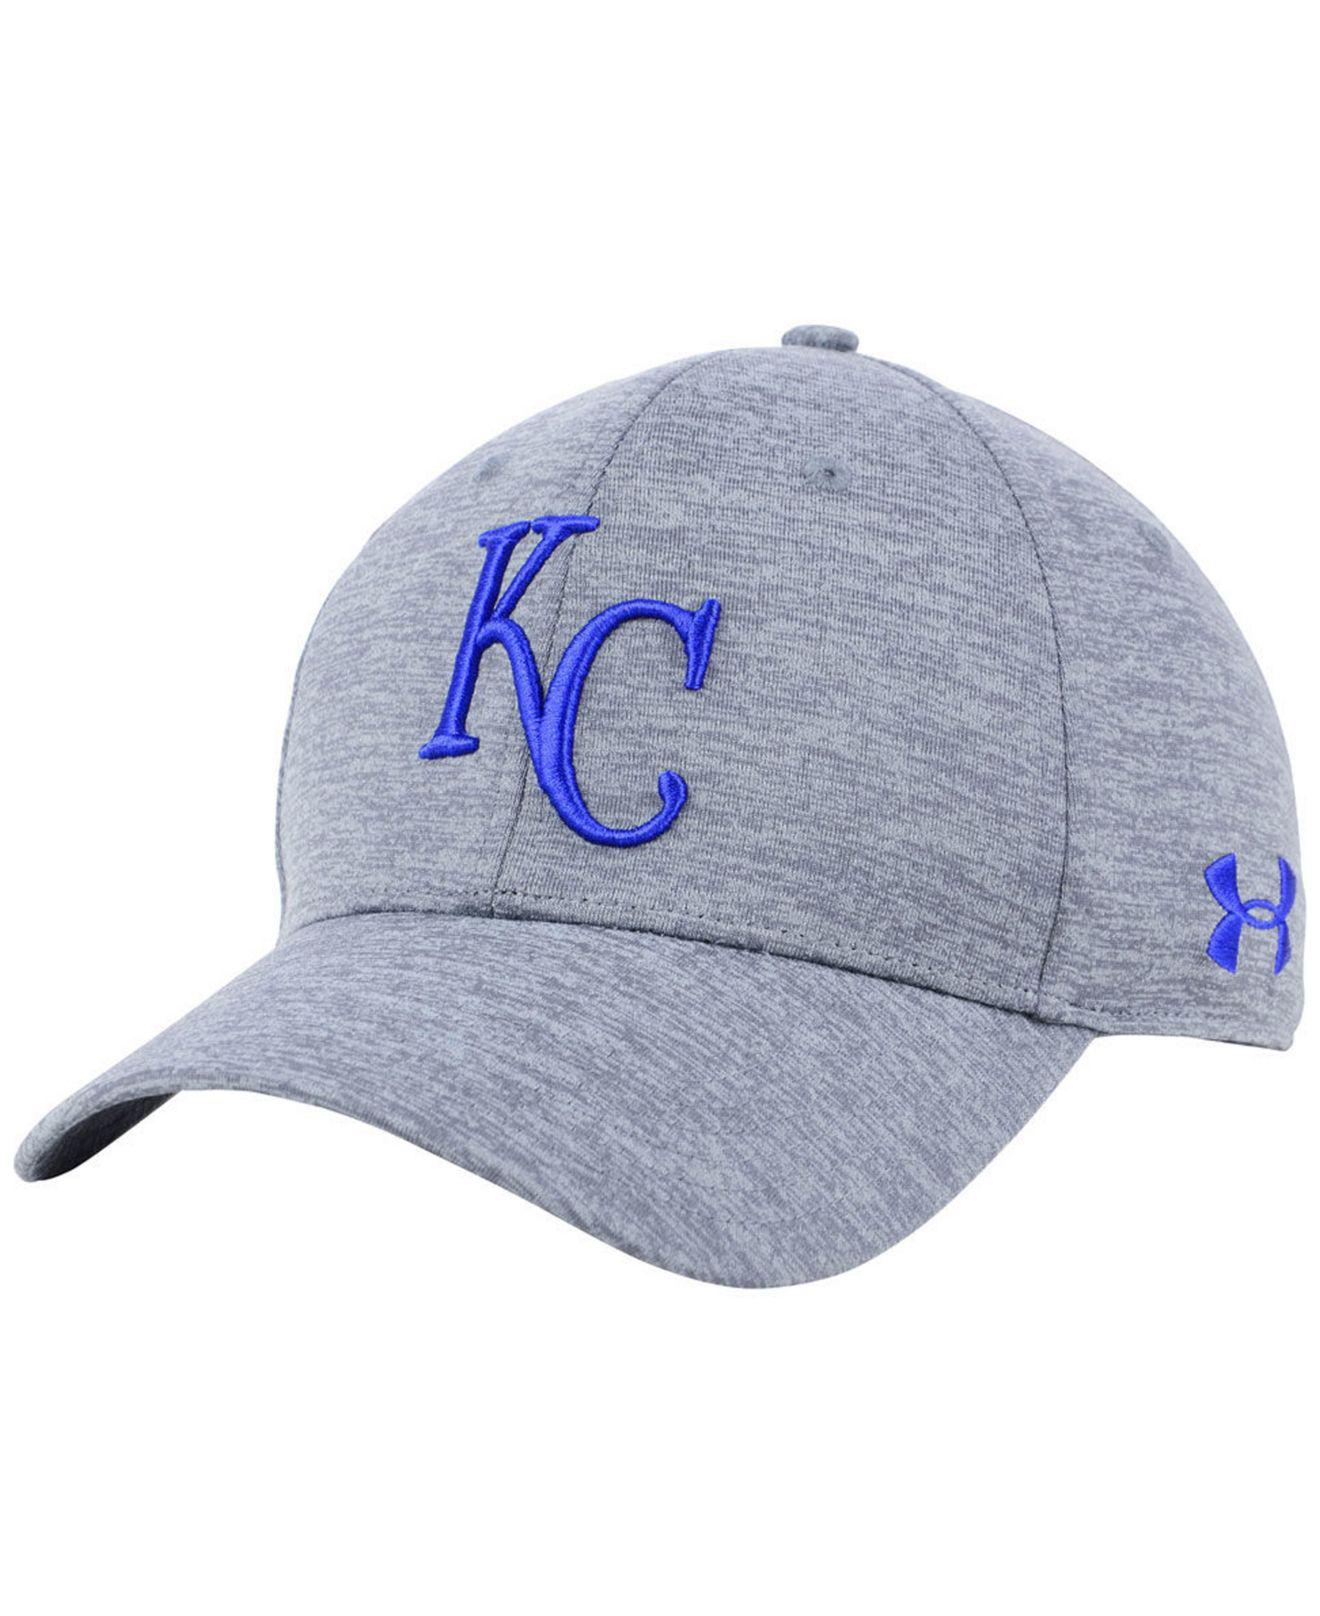 buy popular 9e4bd 43675 ... france under armour. mens kansas city royals twist closer cap 2dae8  4cf8a